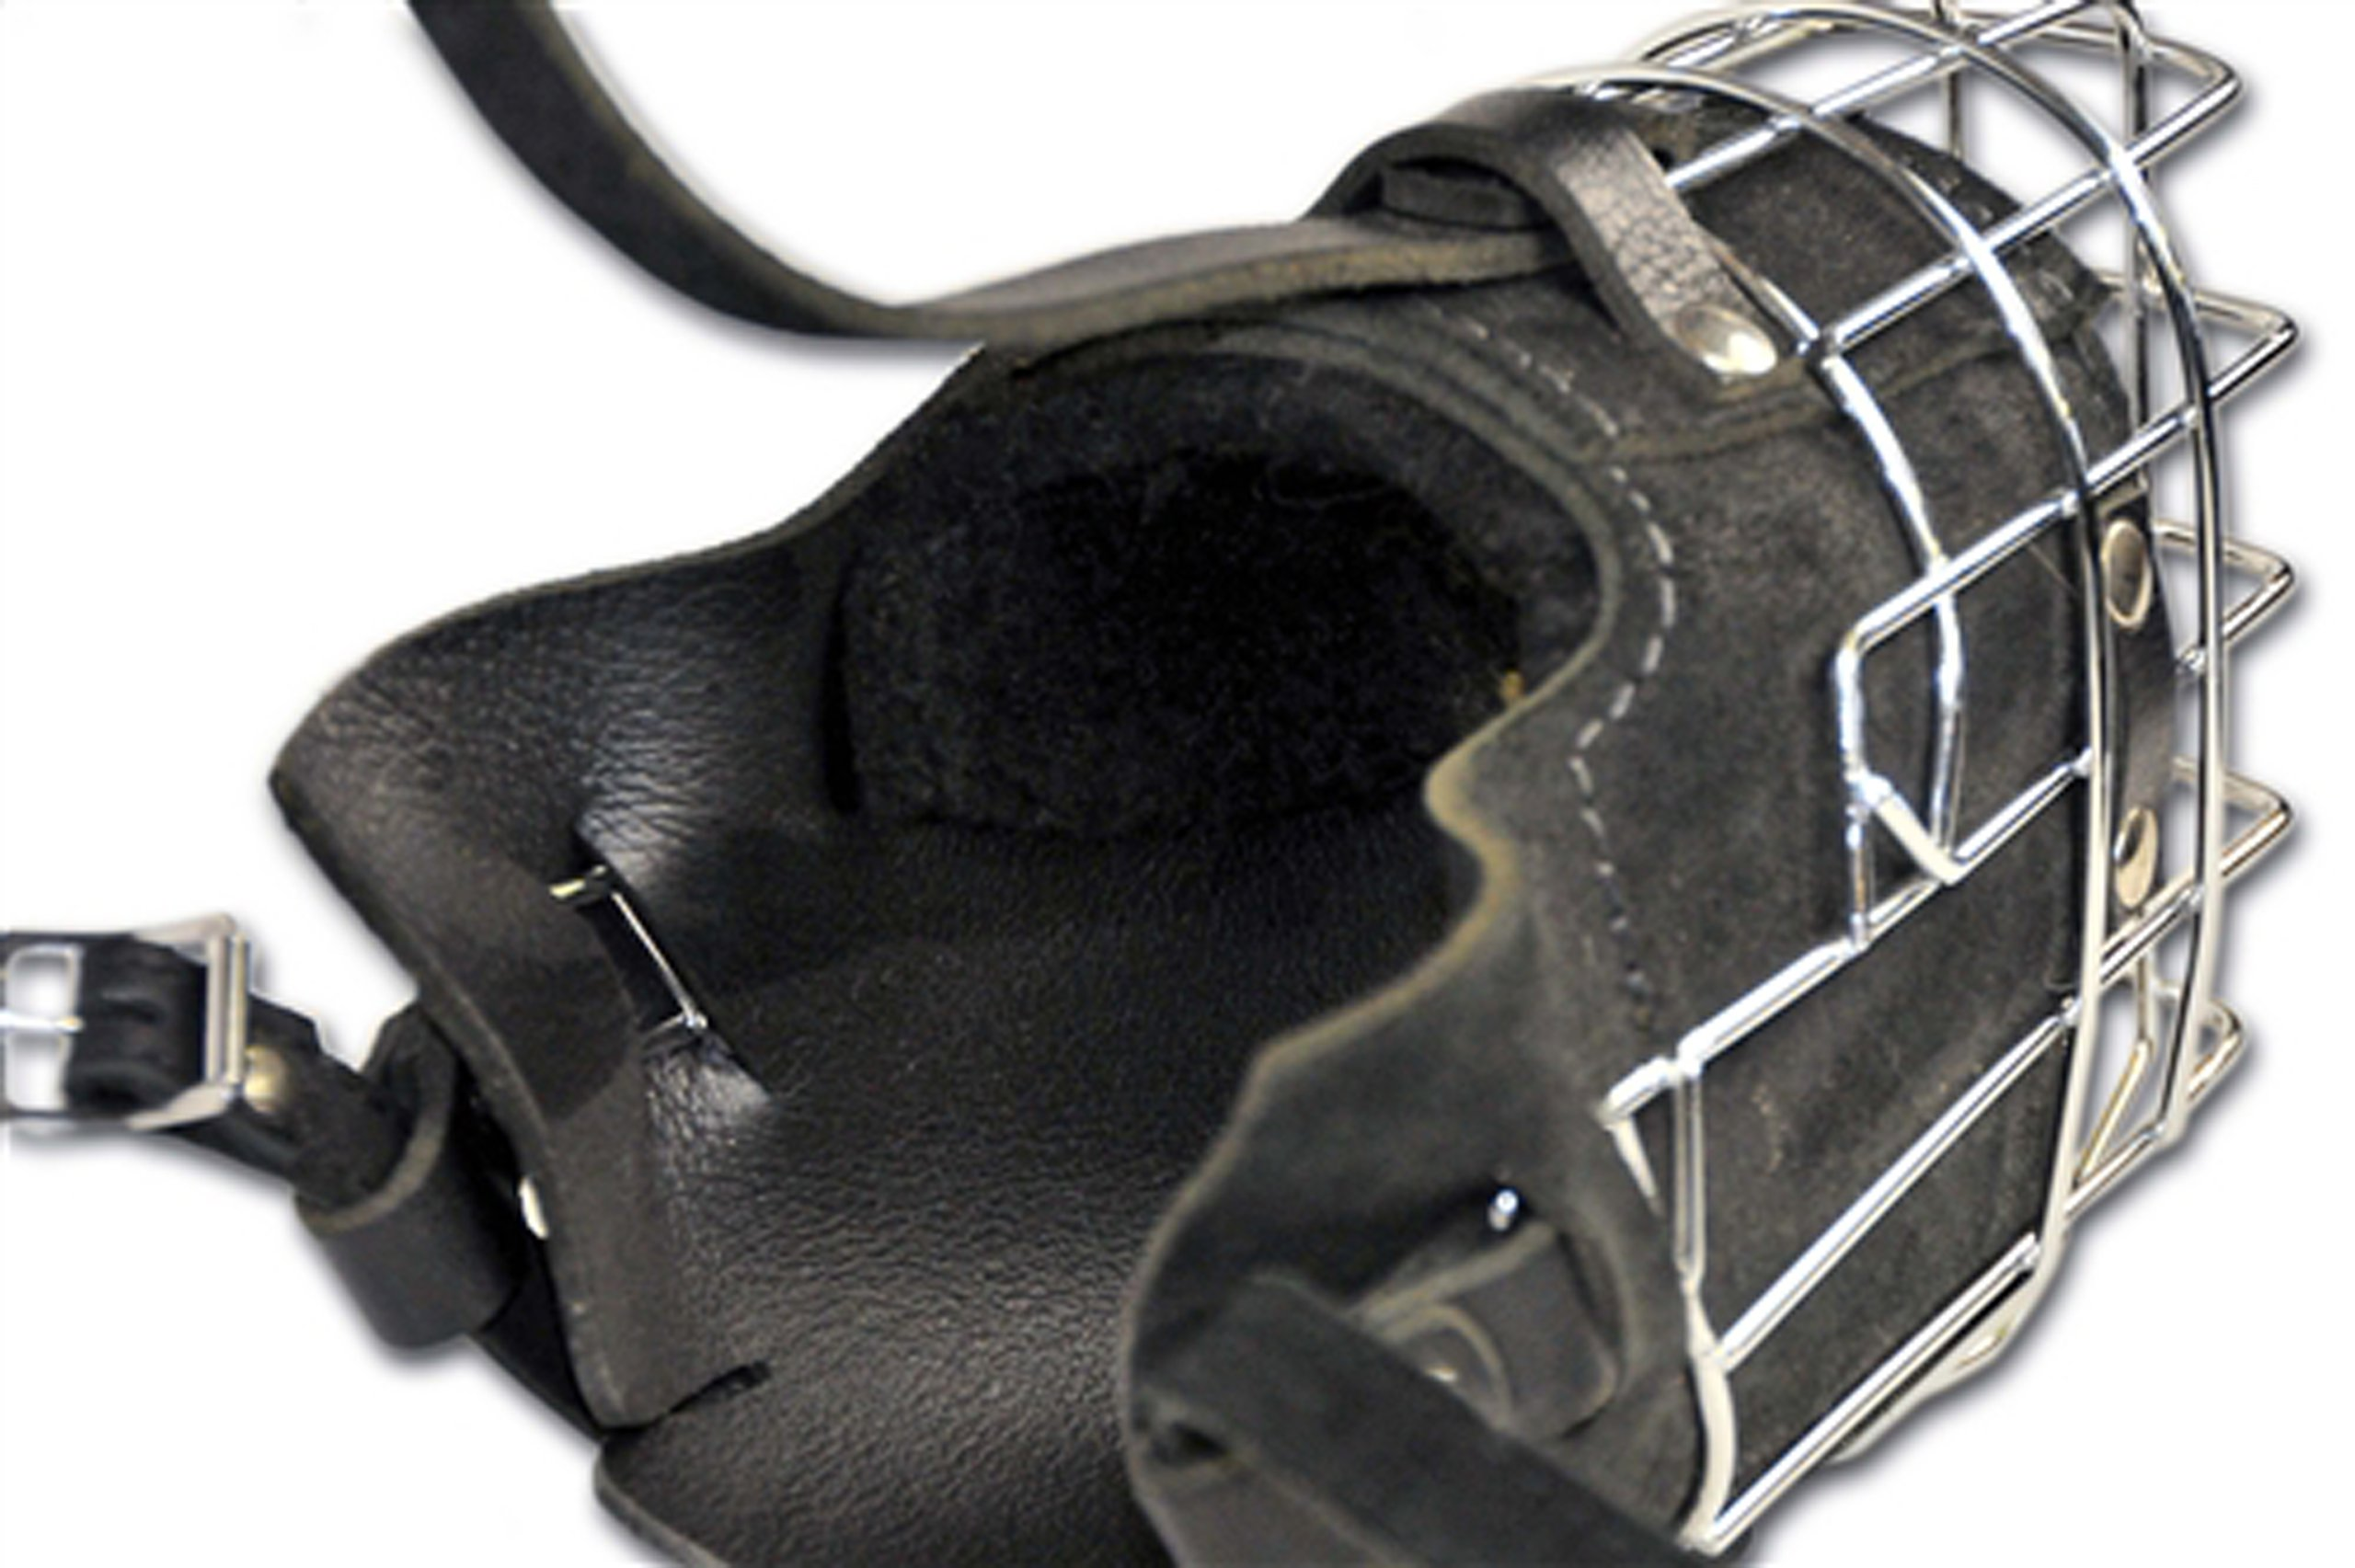 Dean and Tyler DT Freedom Fully Padded Muzzle, Size No. 3 - German Shepherd Male by Dean & Tyler (Image #3)